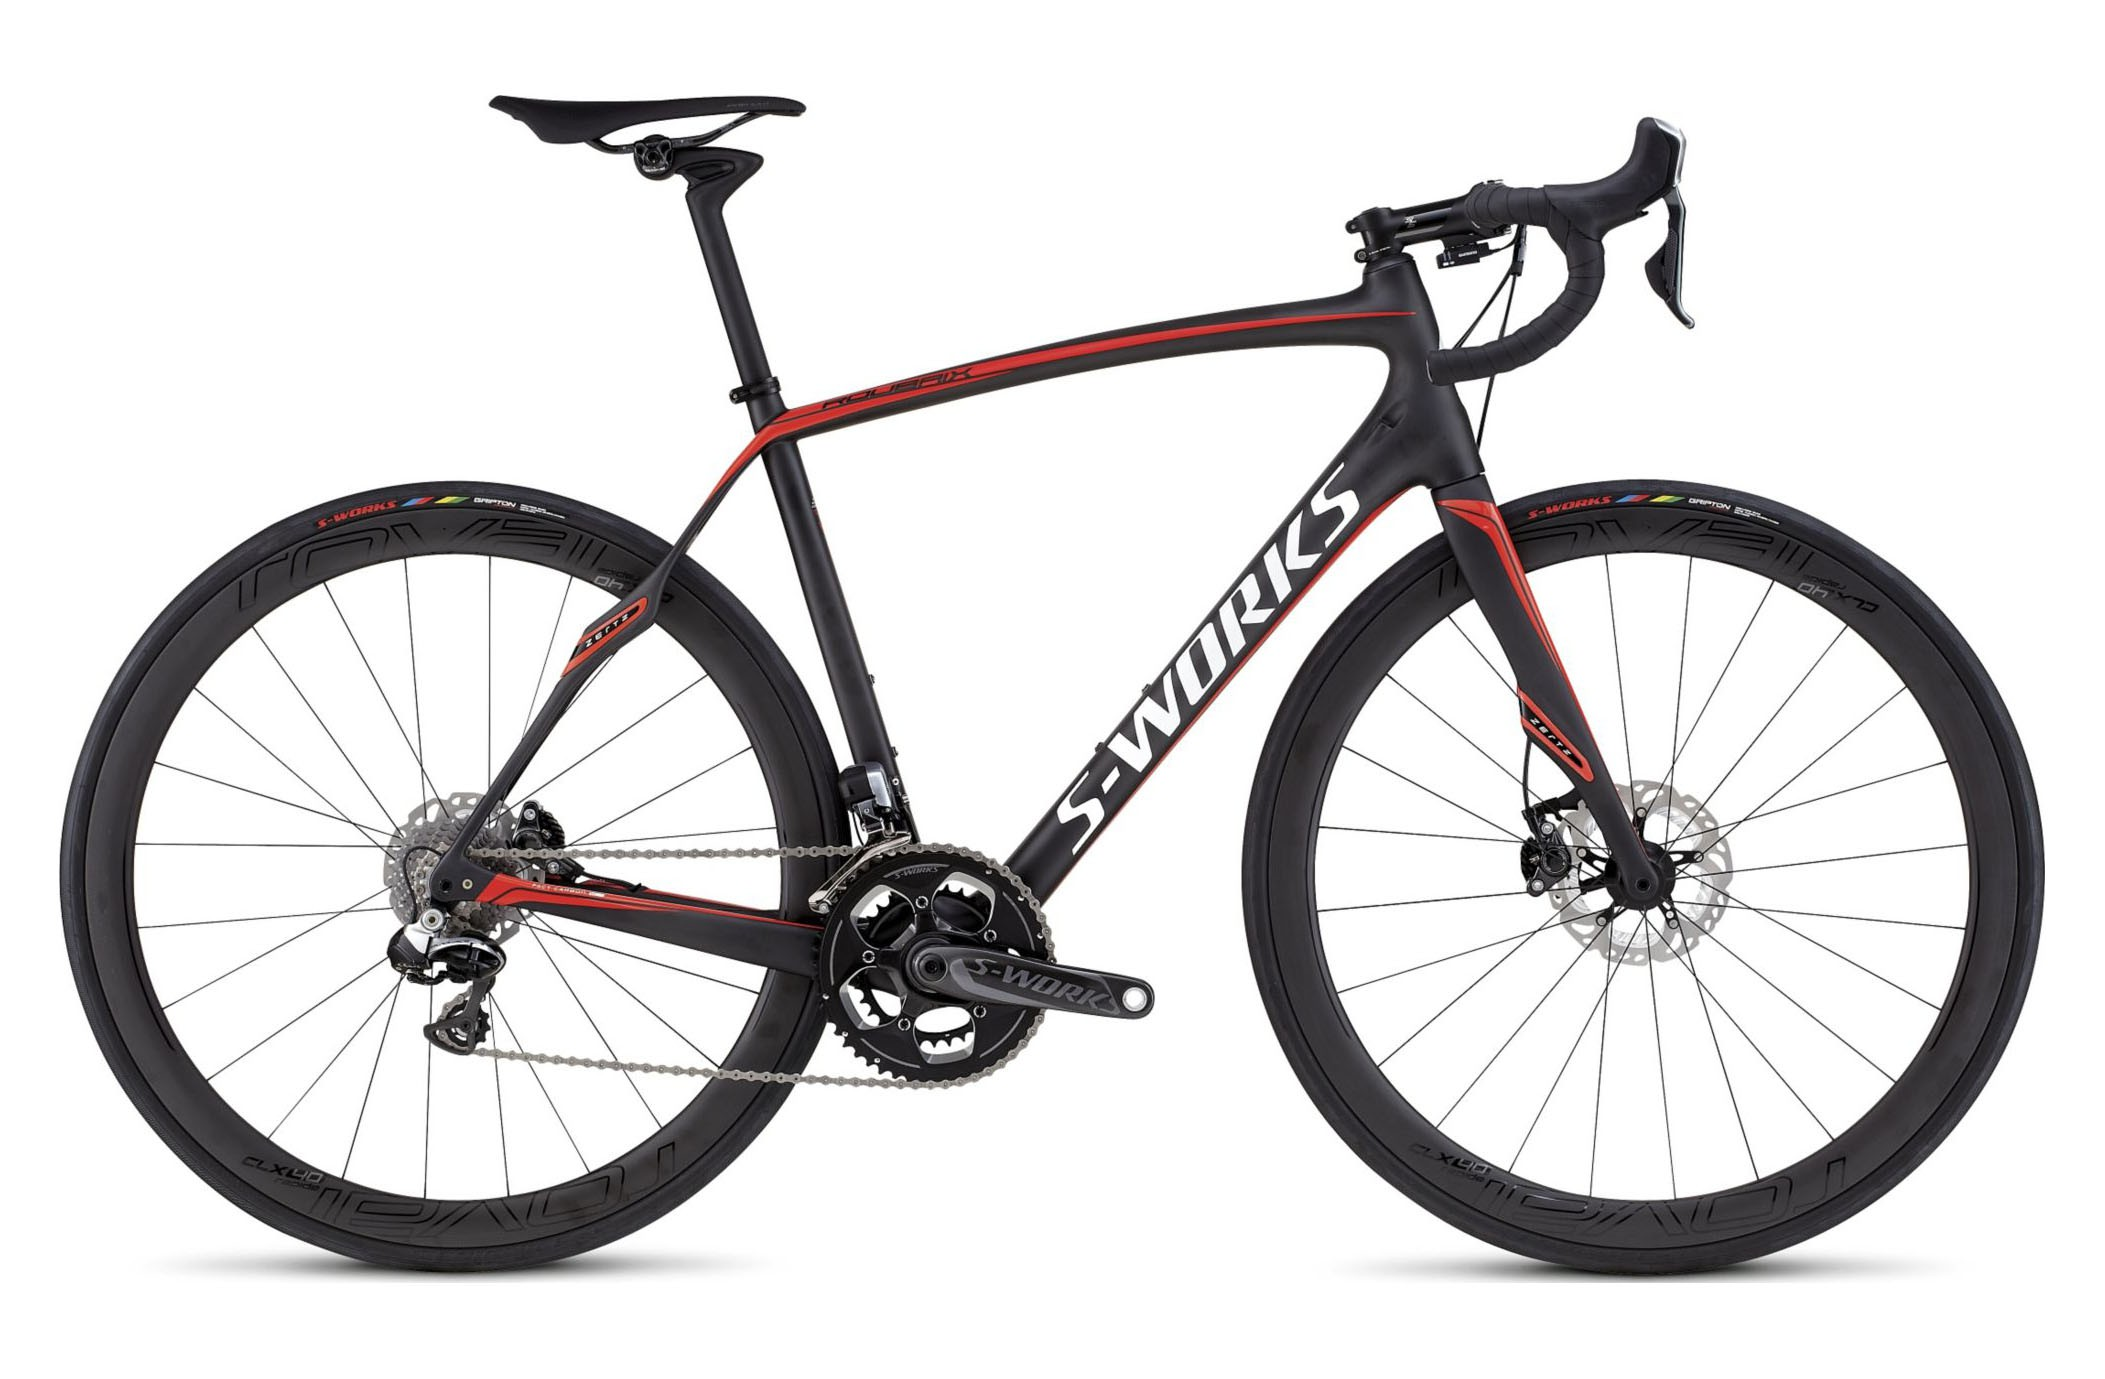 Шоссейный велосипед Specialized S-Works Roubaix SL4 Disc Di2 (2016)